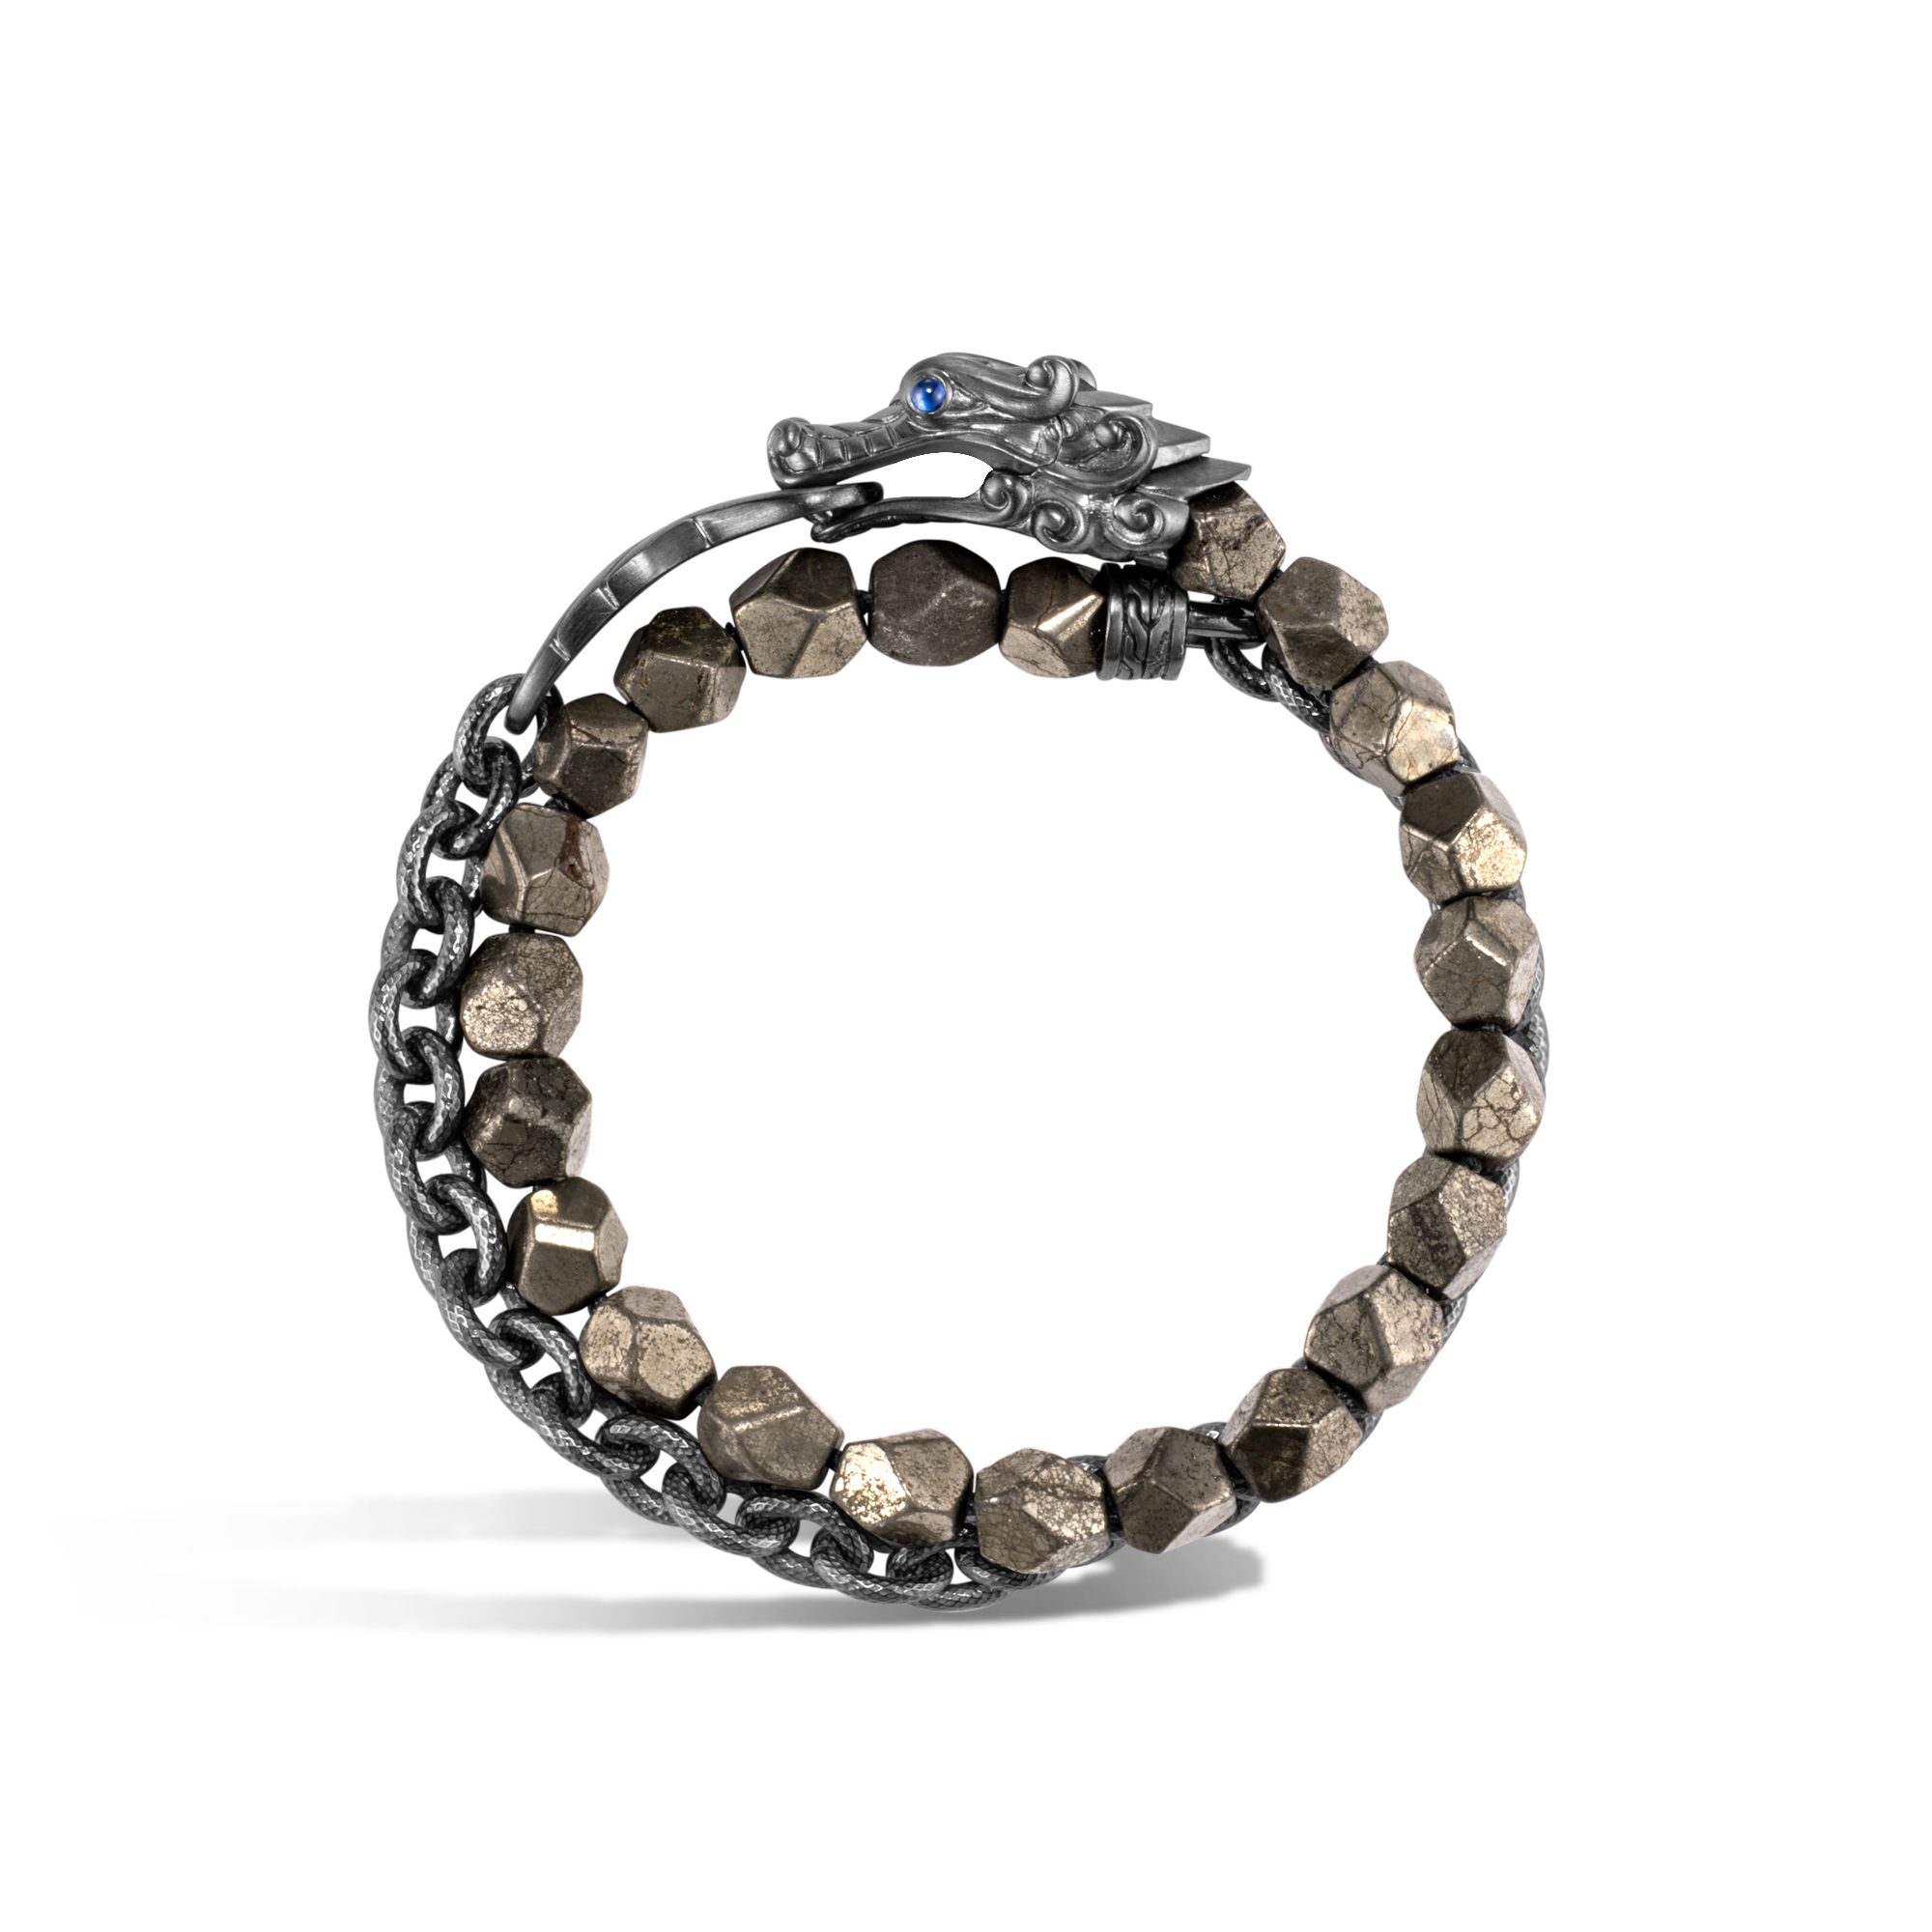 Legends Naga Double Wrap Bracelet, Blackened Silver, 8MM Gem, Blue Sapphire, large